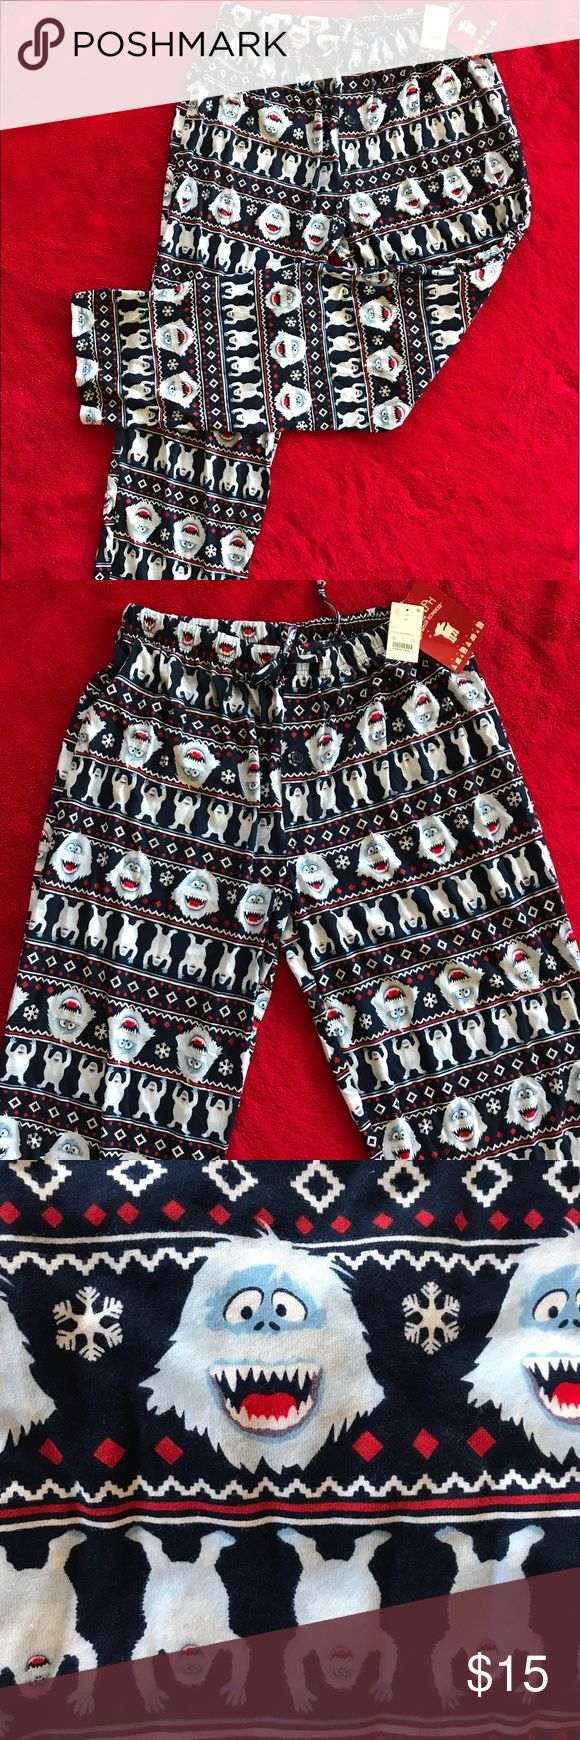 Abominable snowman pants size XL How cute are these? They have the abominable snowman on them, my favorite Christmas show ever! Very soft and comfortable, perfect for those winter Christmas nights by the fire! Intimates & Sleepwear Pajamas